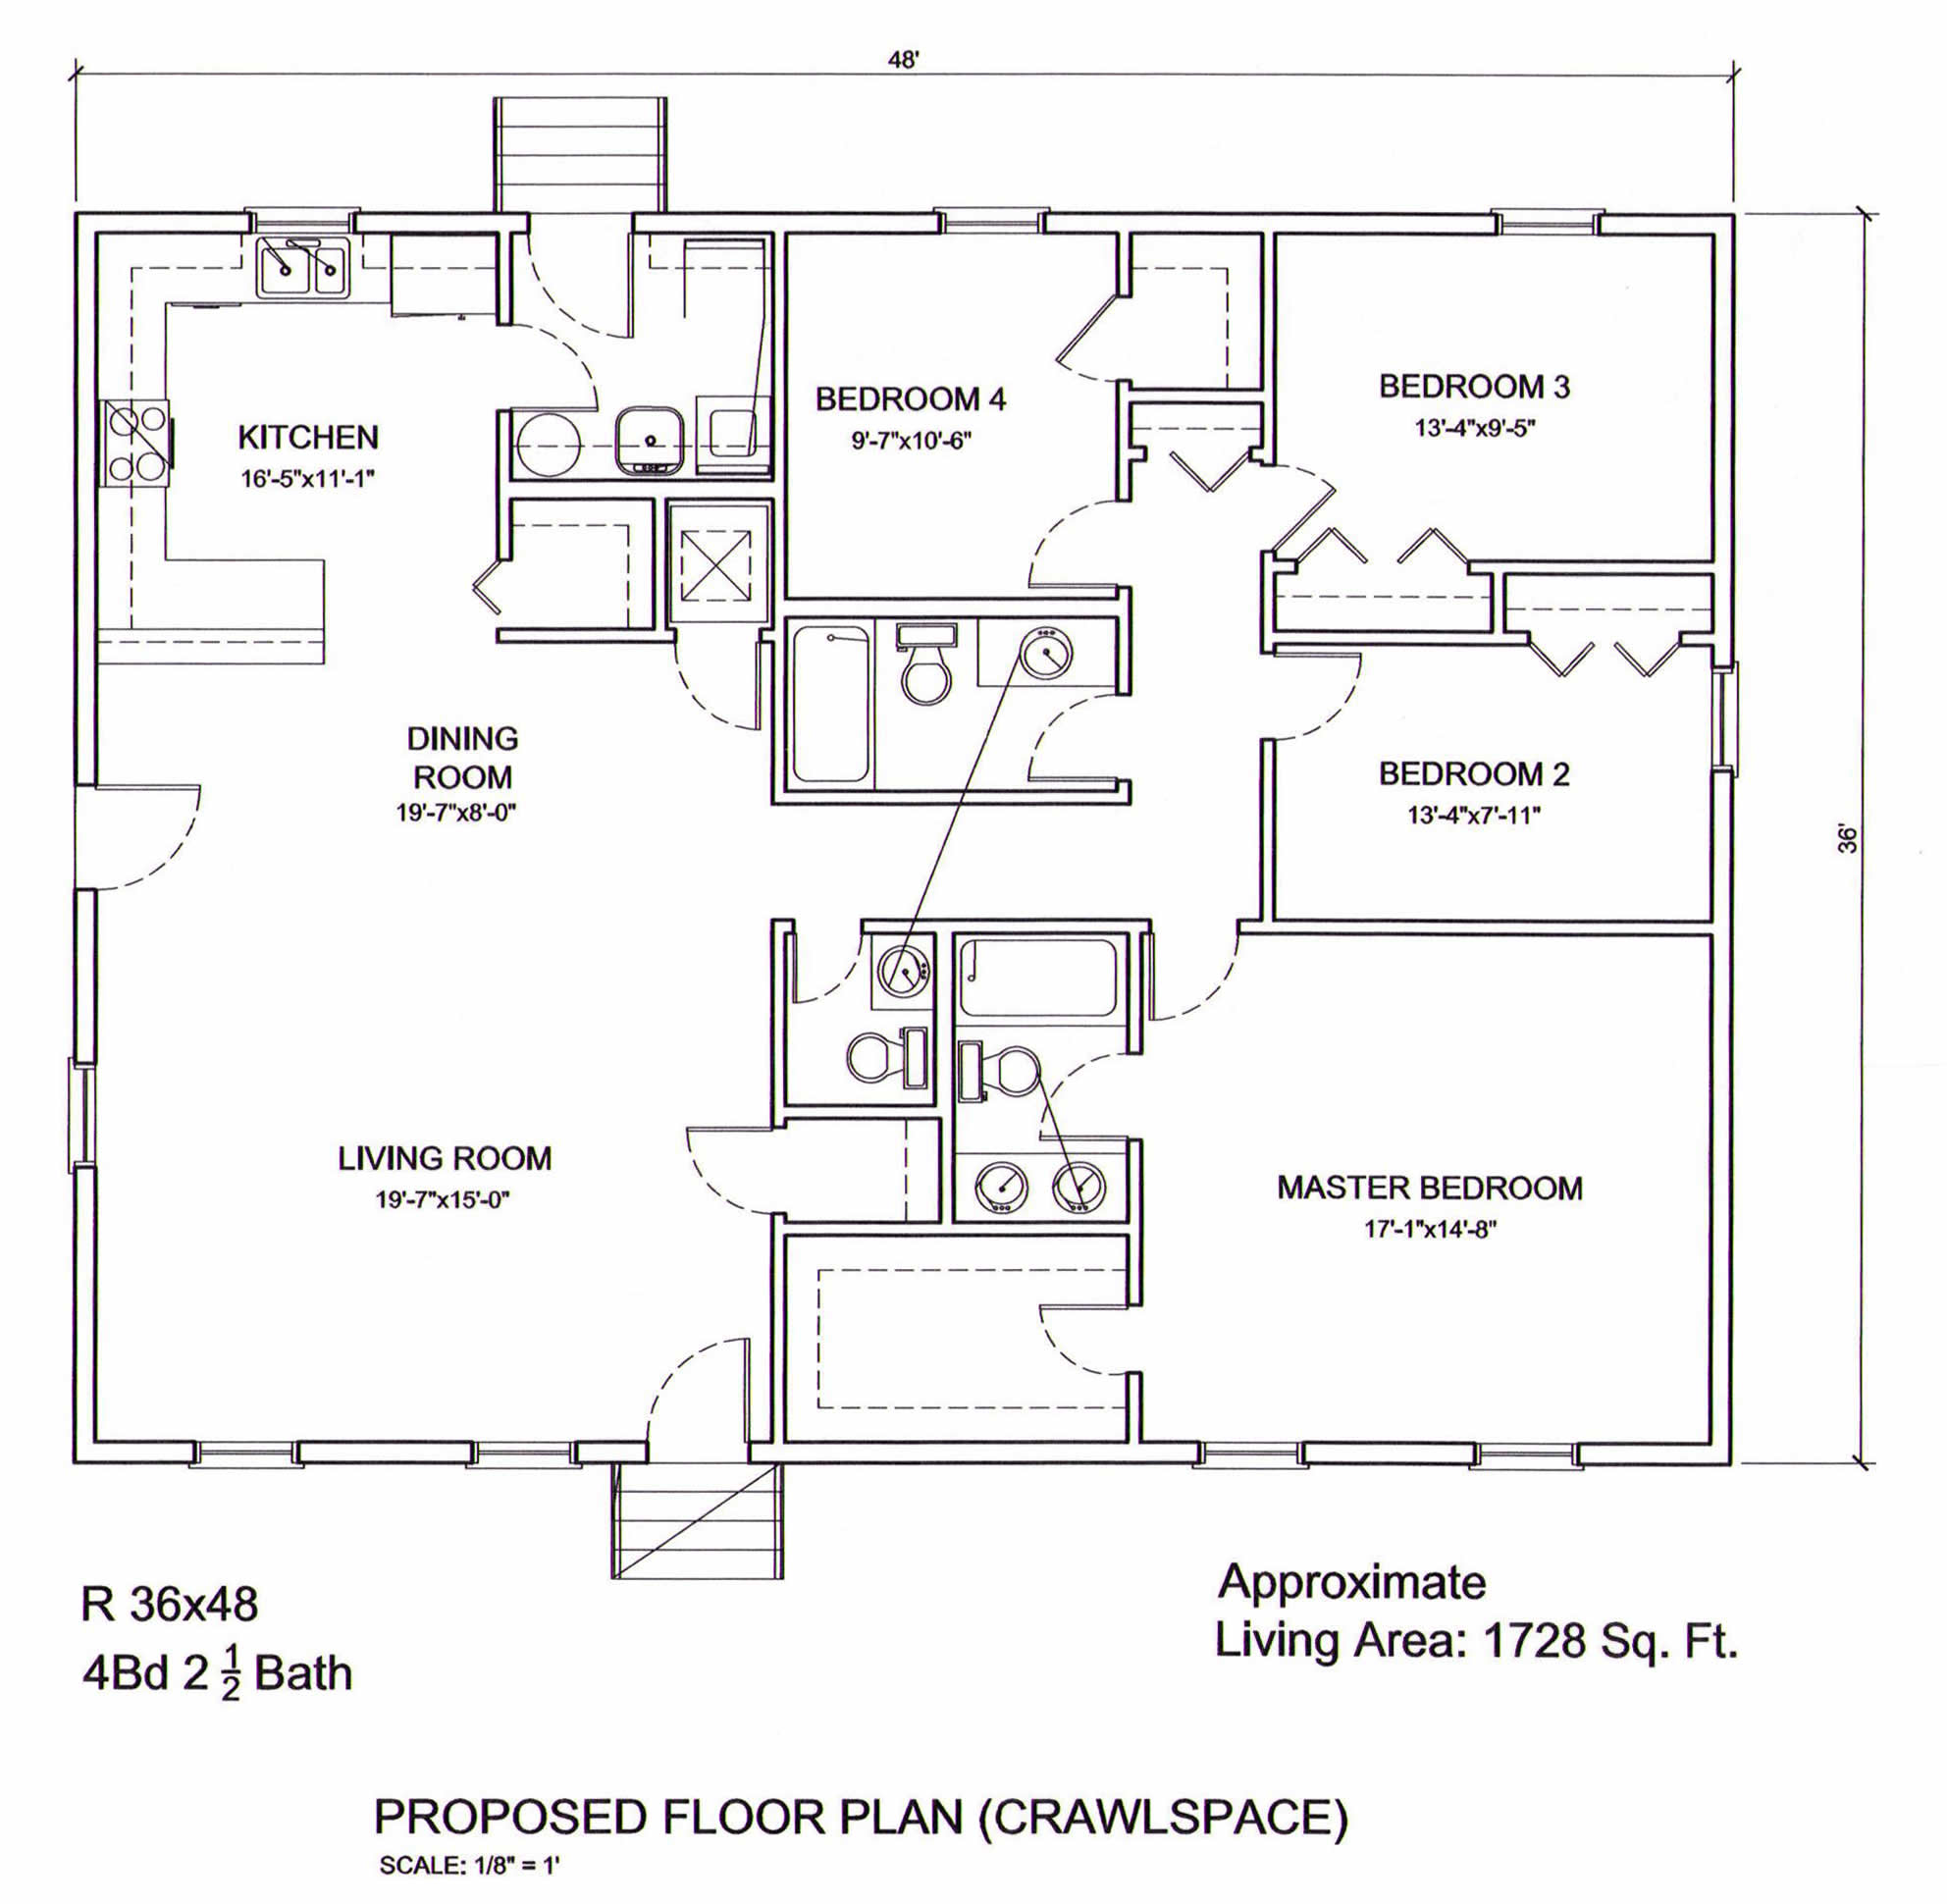 Ameripanel homes of south carolina ranch floor plans for 4 bedroom 2 5 bath ranch house plans